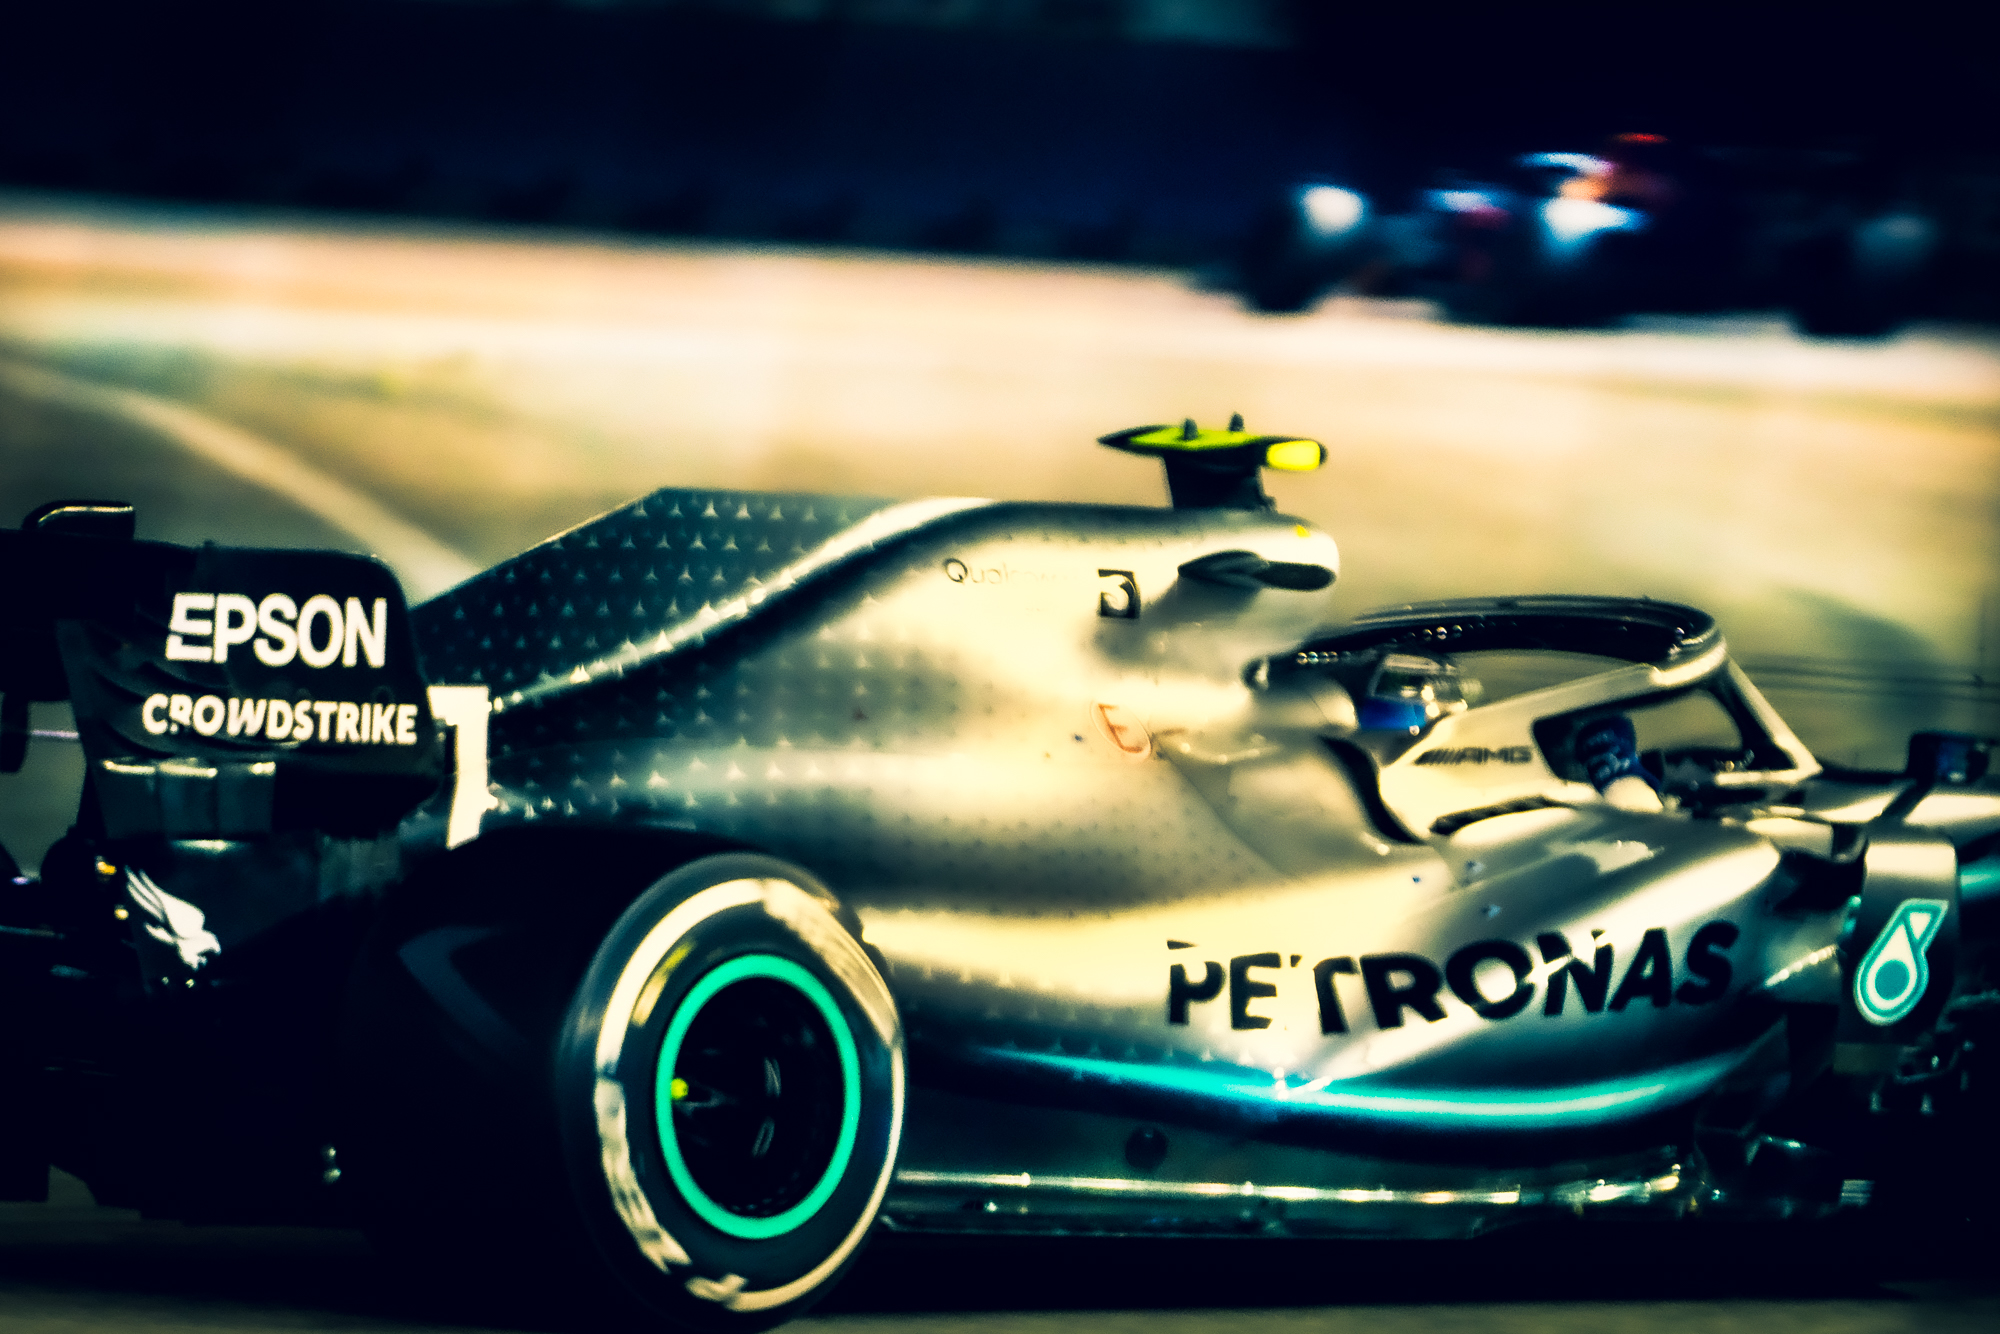 Mercedes Bottas on Redbull, Singapore 2019